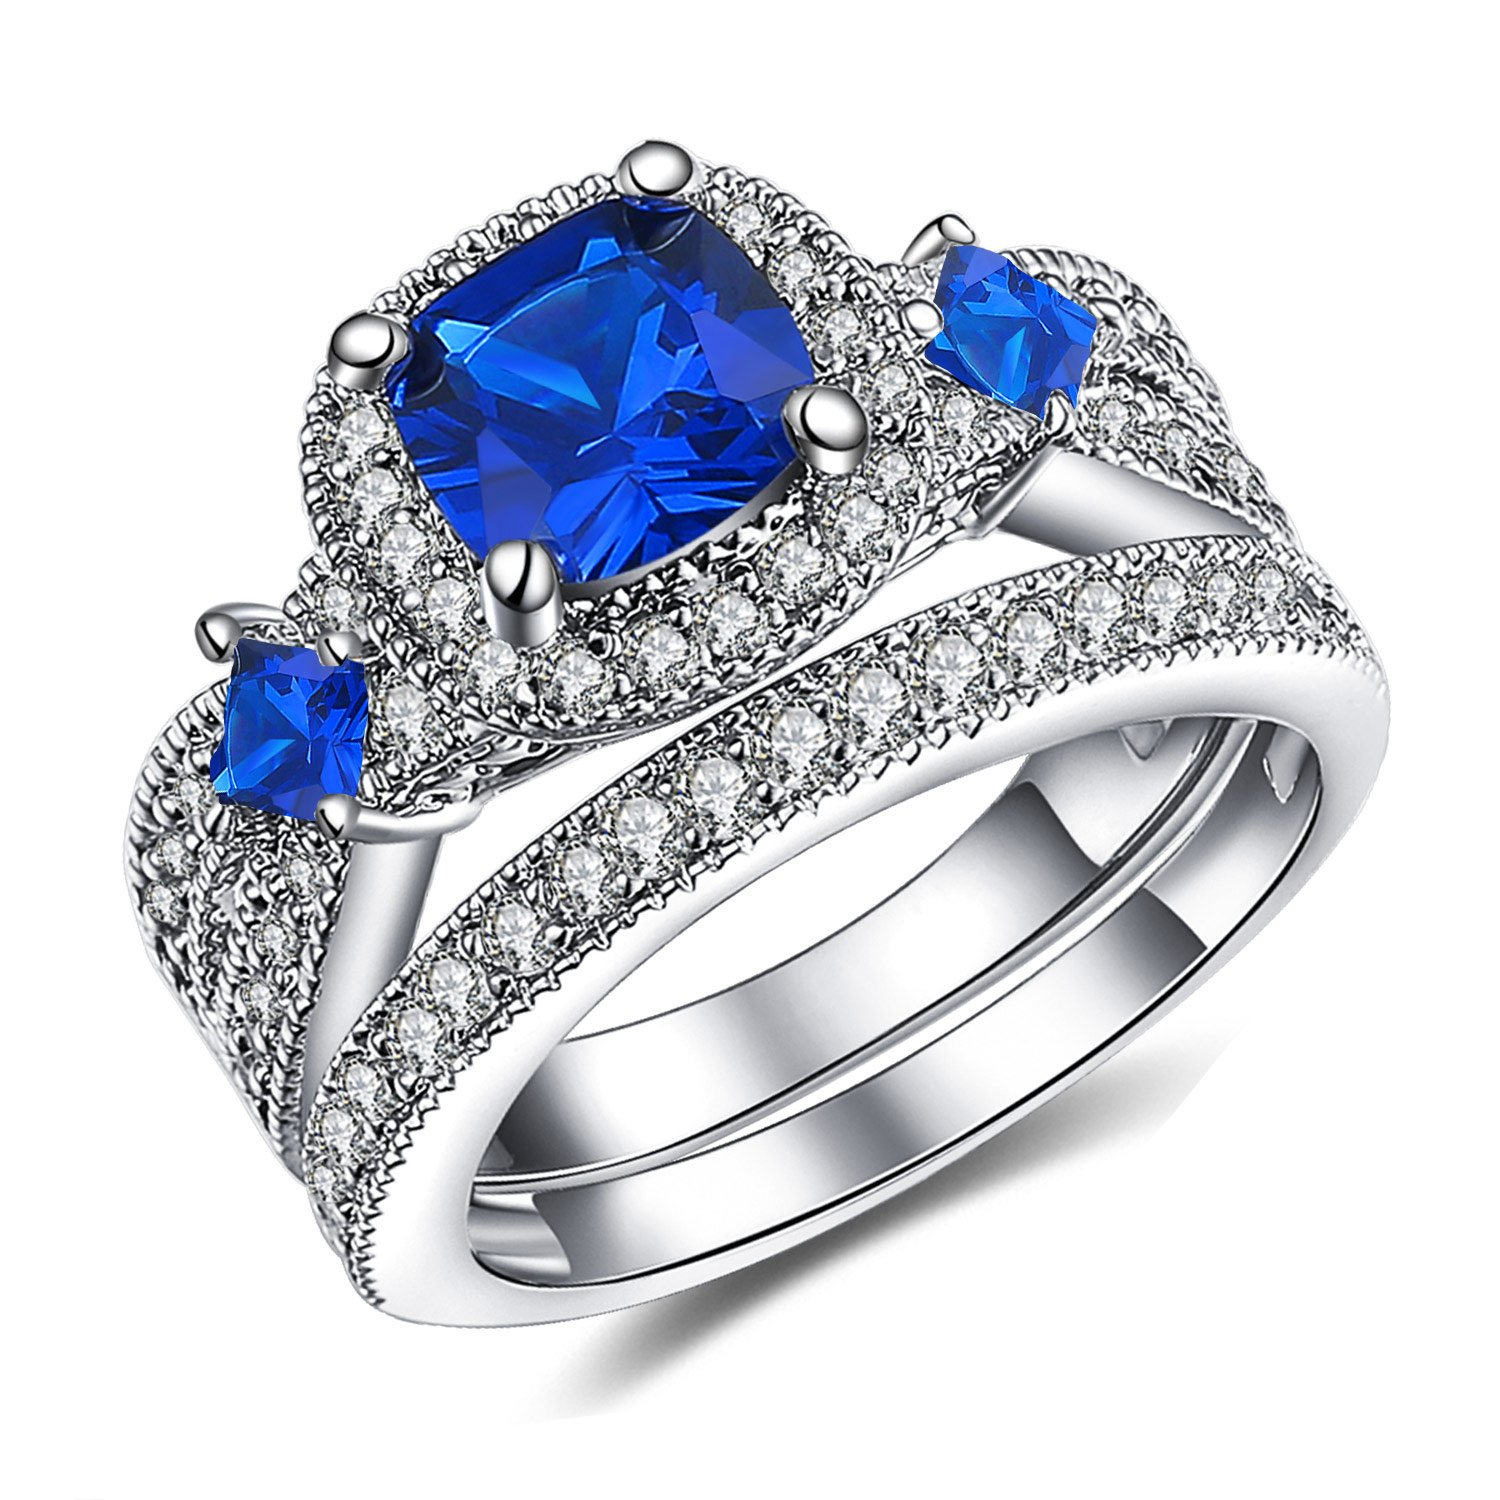 Vibrille 925 Sterling Silver Cushion-Cut Created Blue Sapphire and Cubic zirconia Square Frame Bridal Wedding Ring Sets Size 9